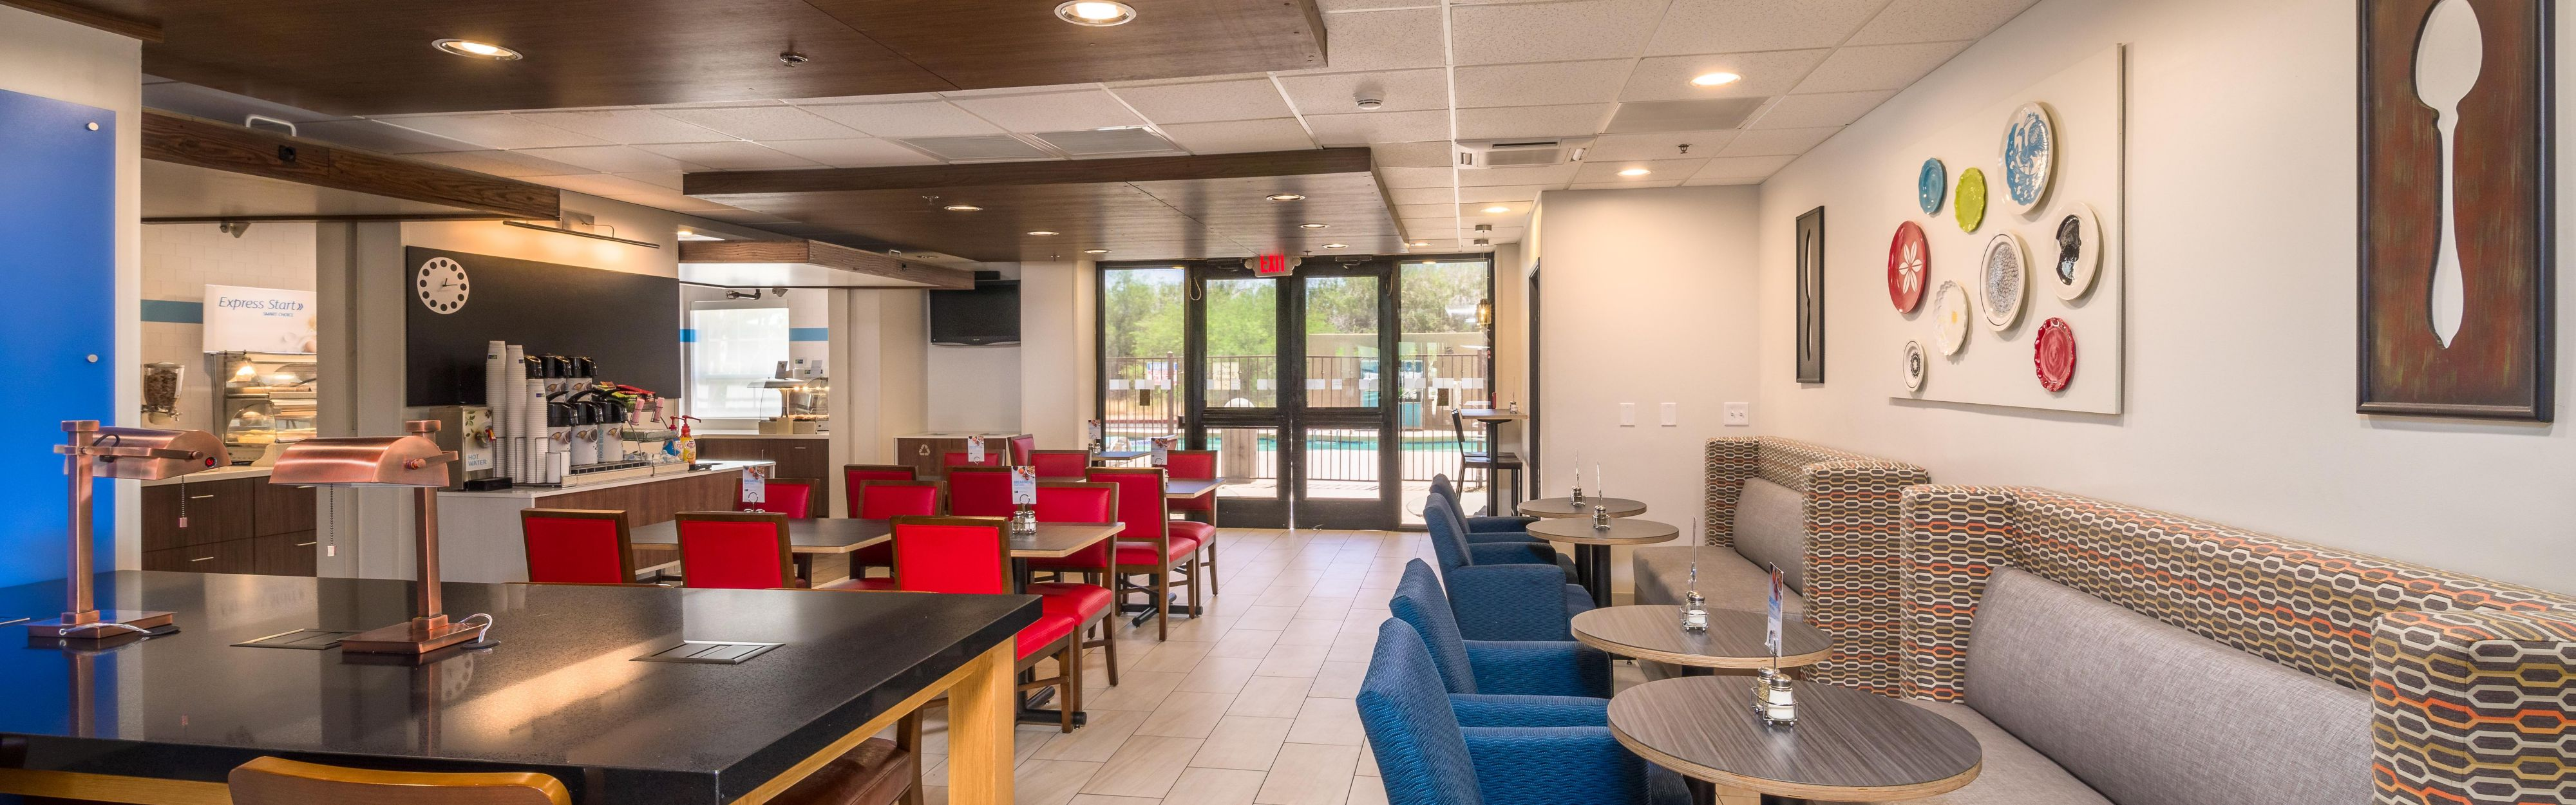 Holiday Inn Express & Suites Phoenix Airport image 3